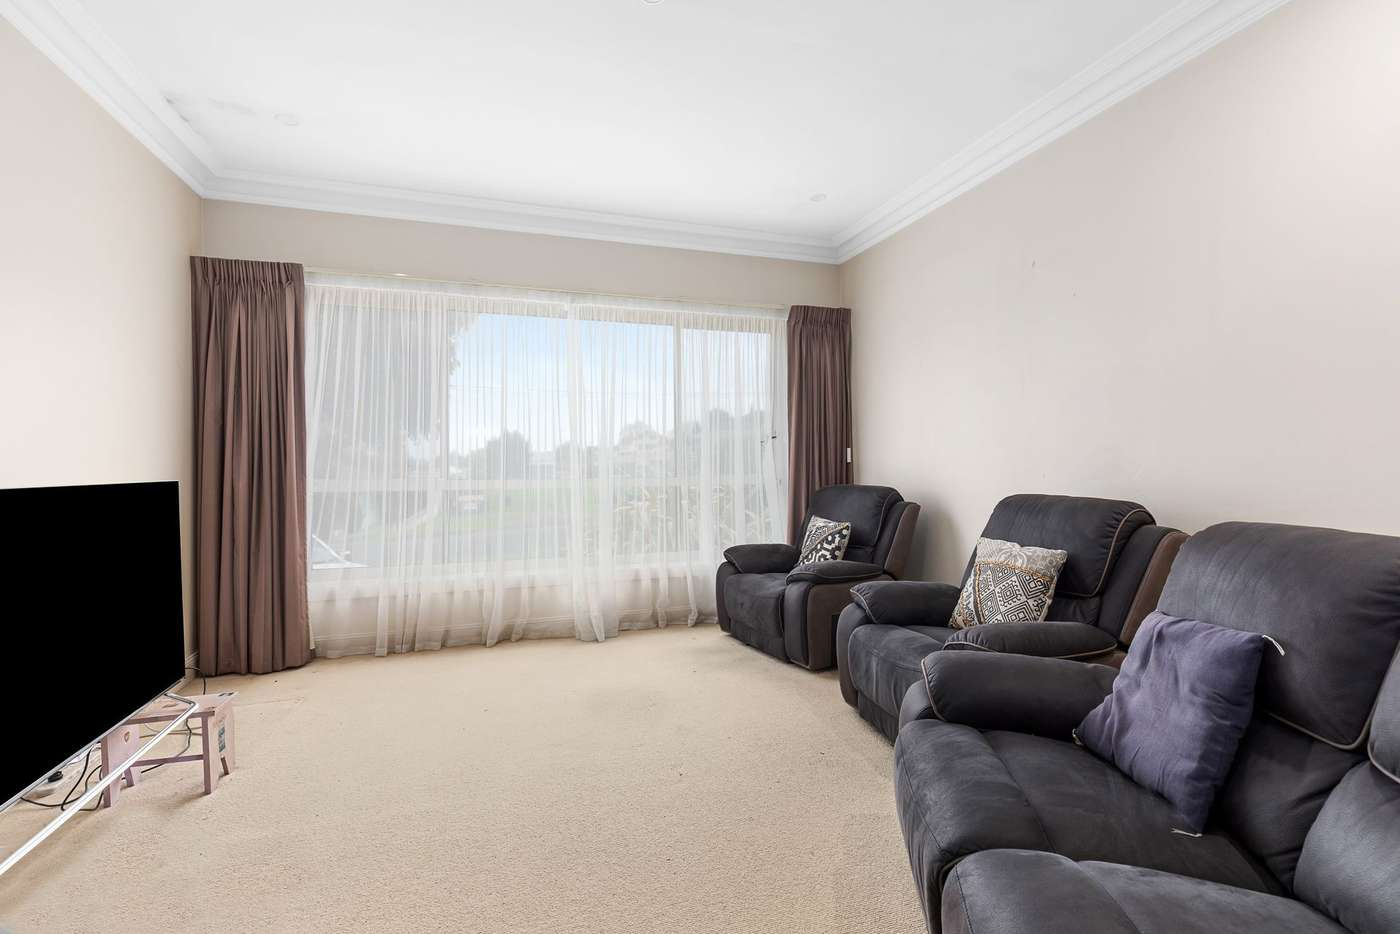 Fifth view of Homely house listing, 6 Fairlie Street, Mount Gambier SA 5290